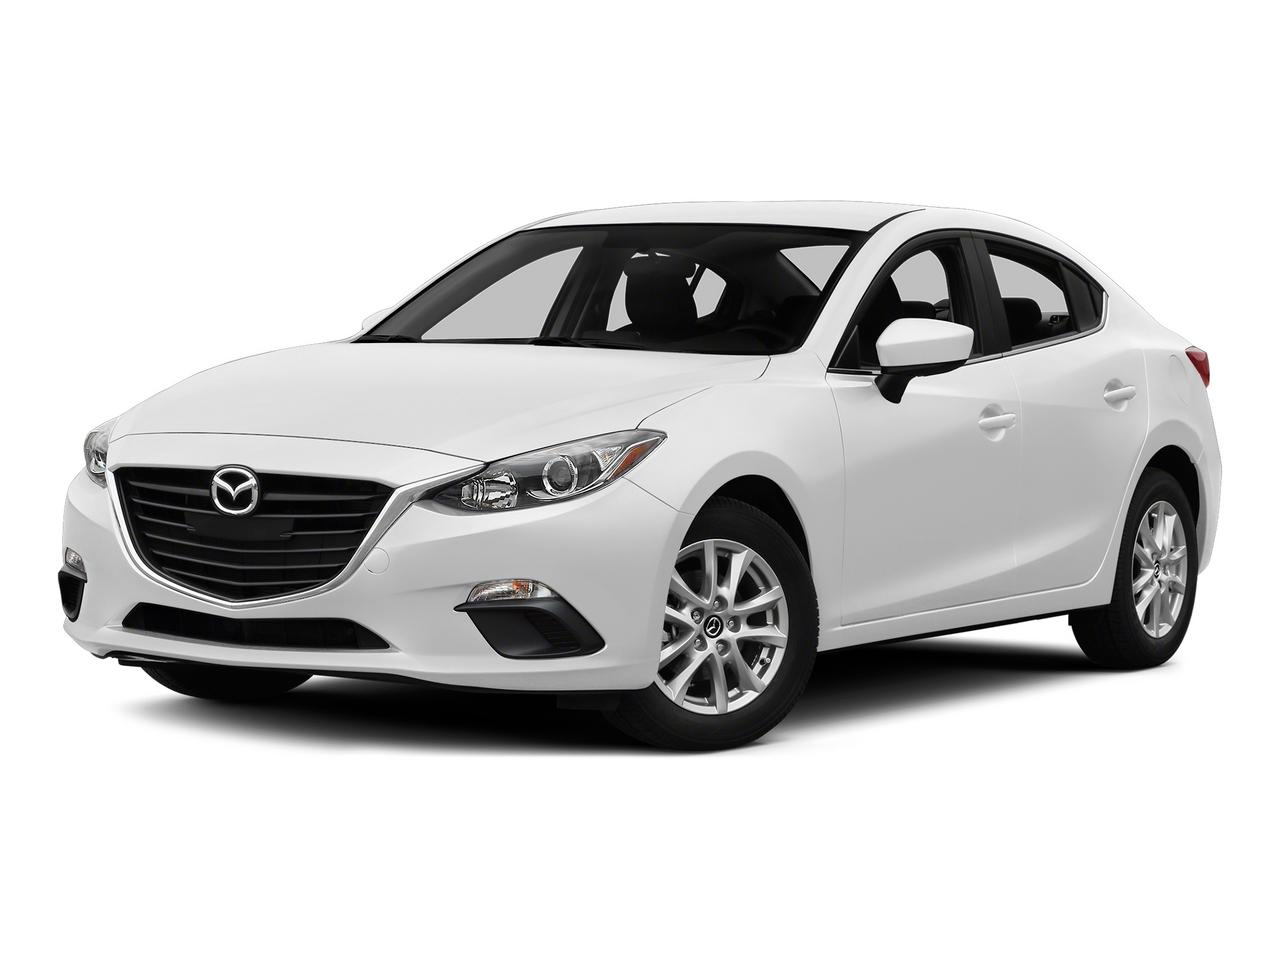 2015 Mazda Mazda3 Vehicle Photo in Austin, TX 78759